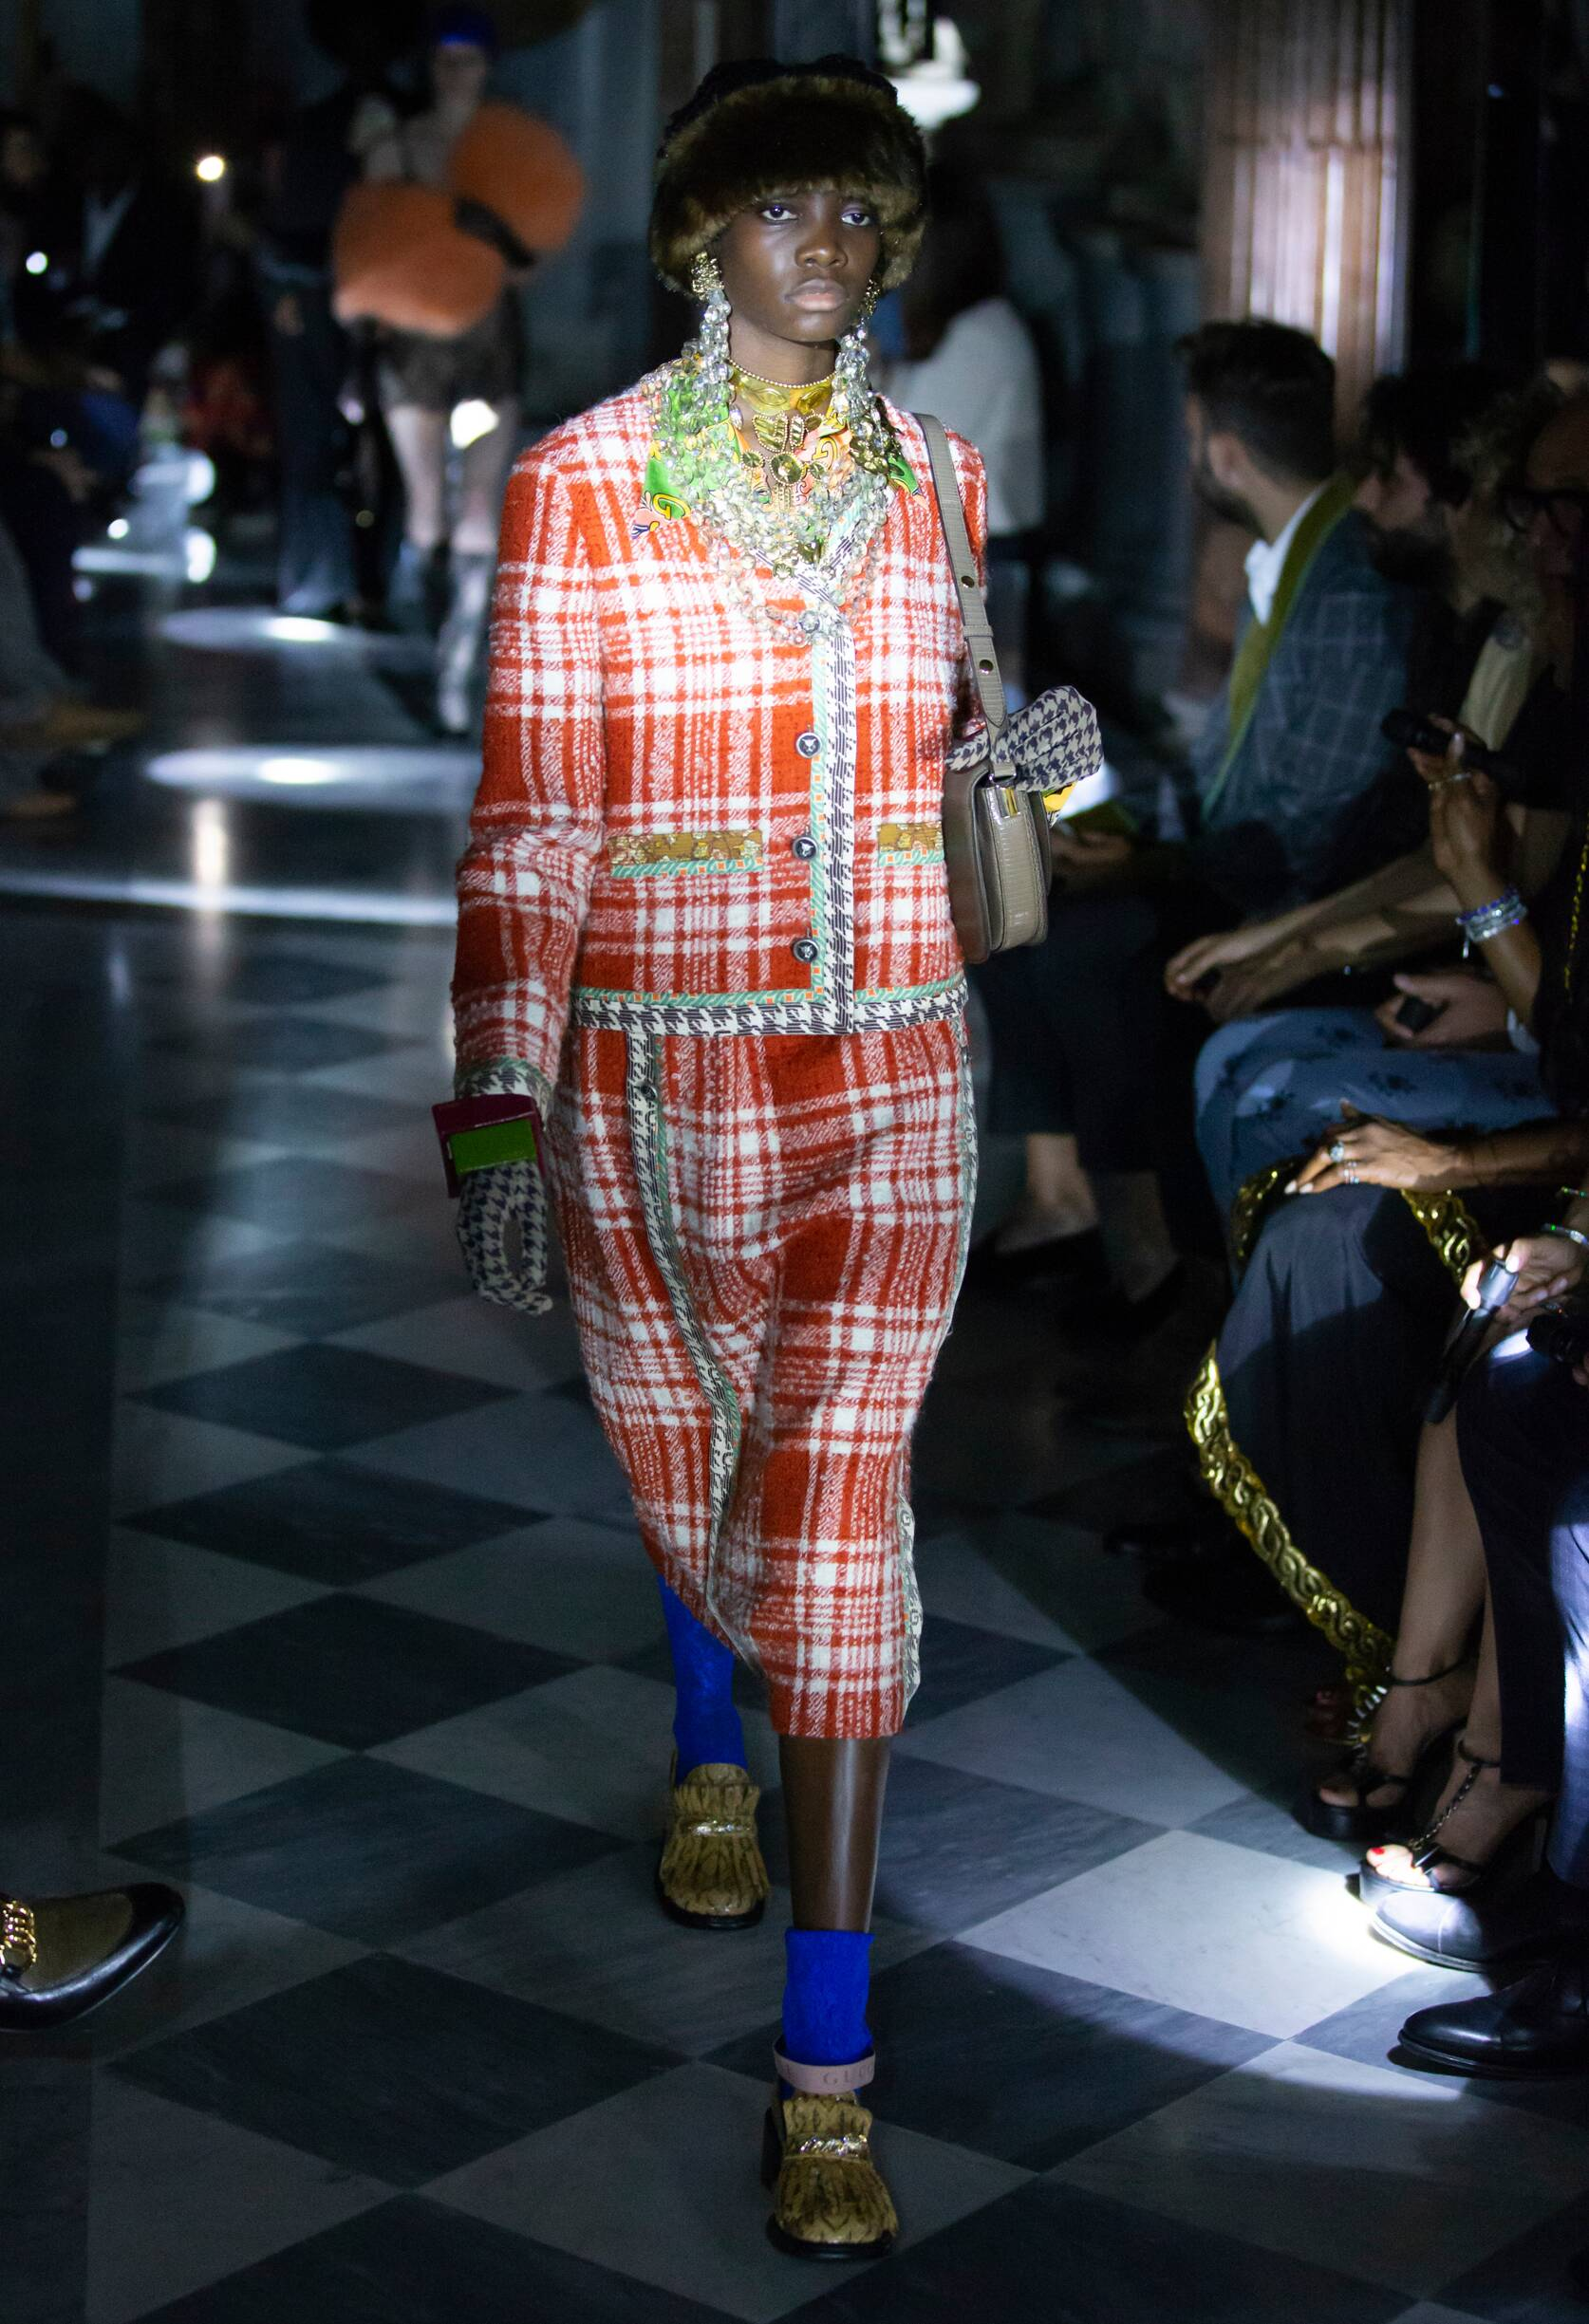 Gucci Cruise 2020 Collection Look 21 Rome